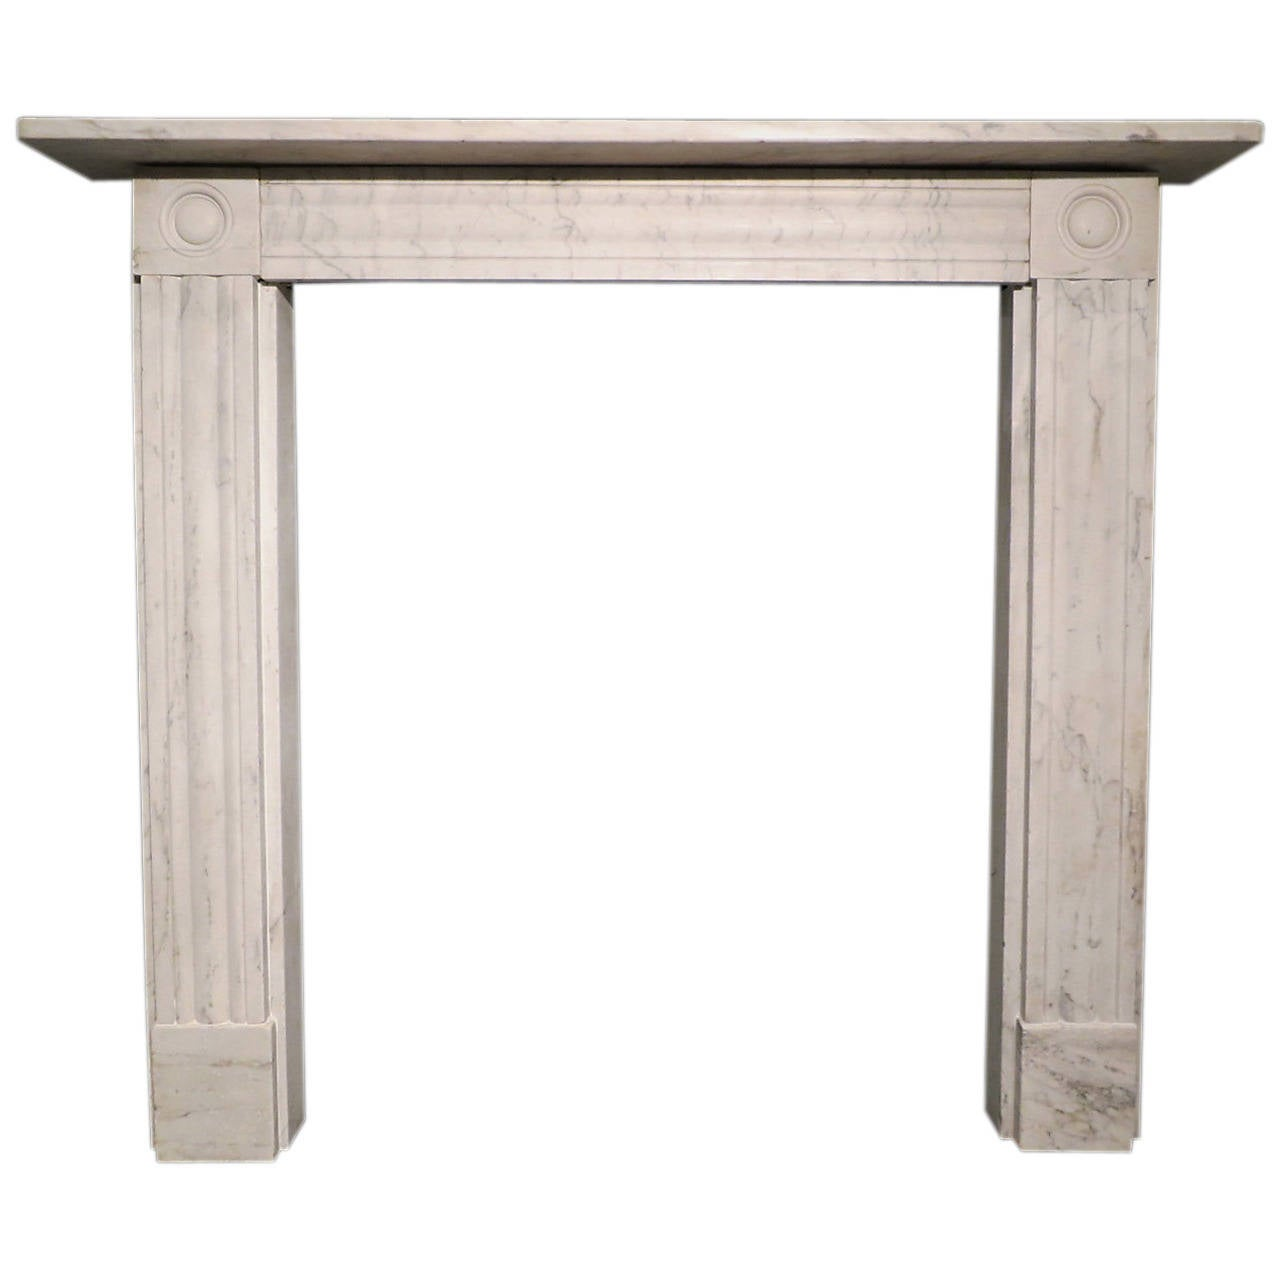 this antique regency marble fireplace mantel is no longer available